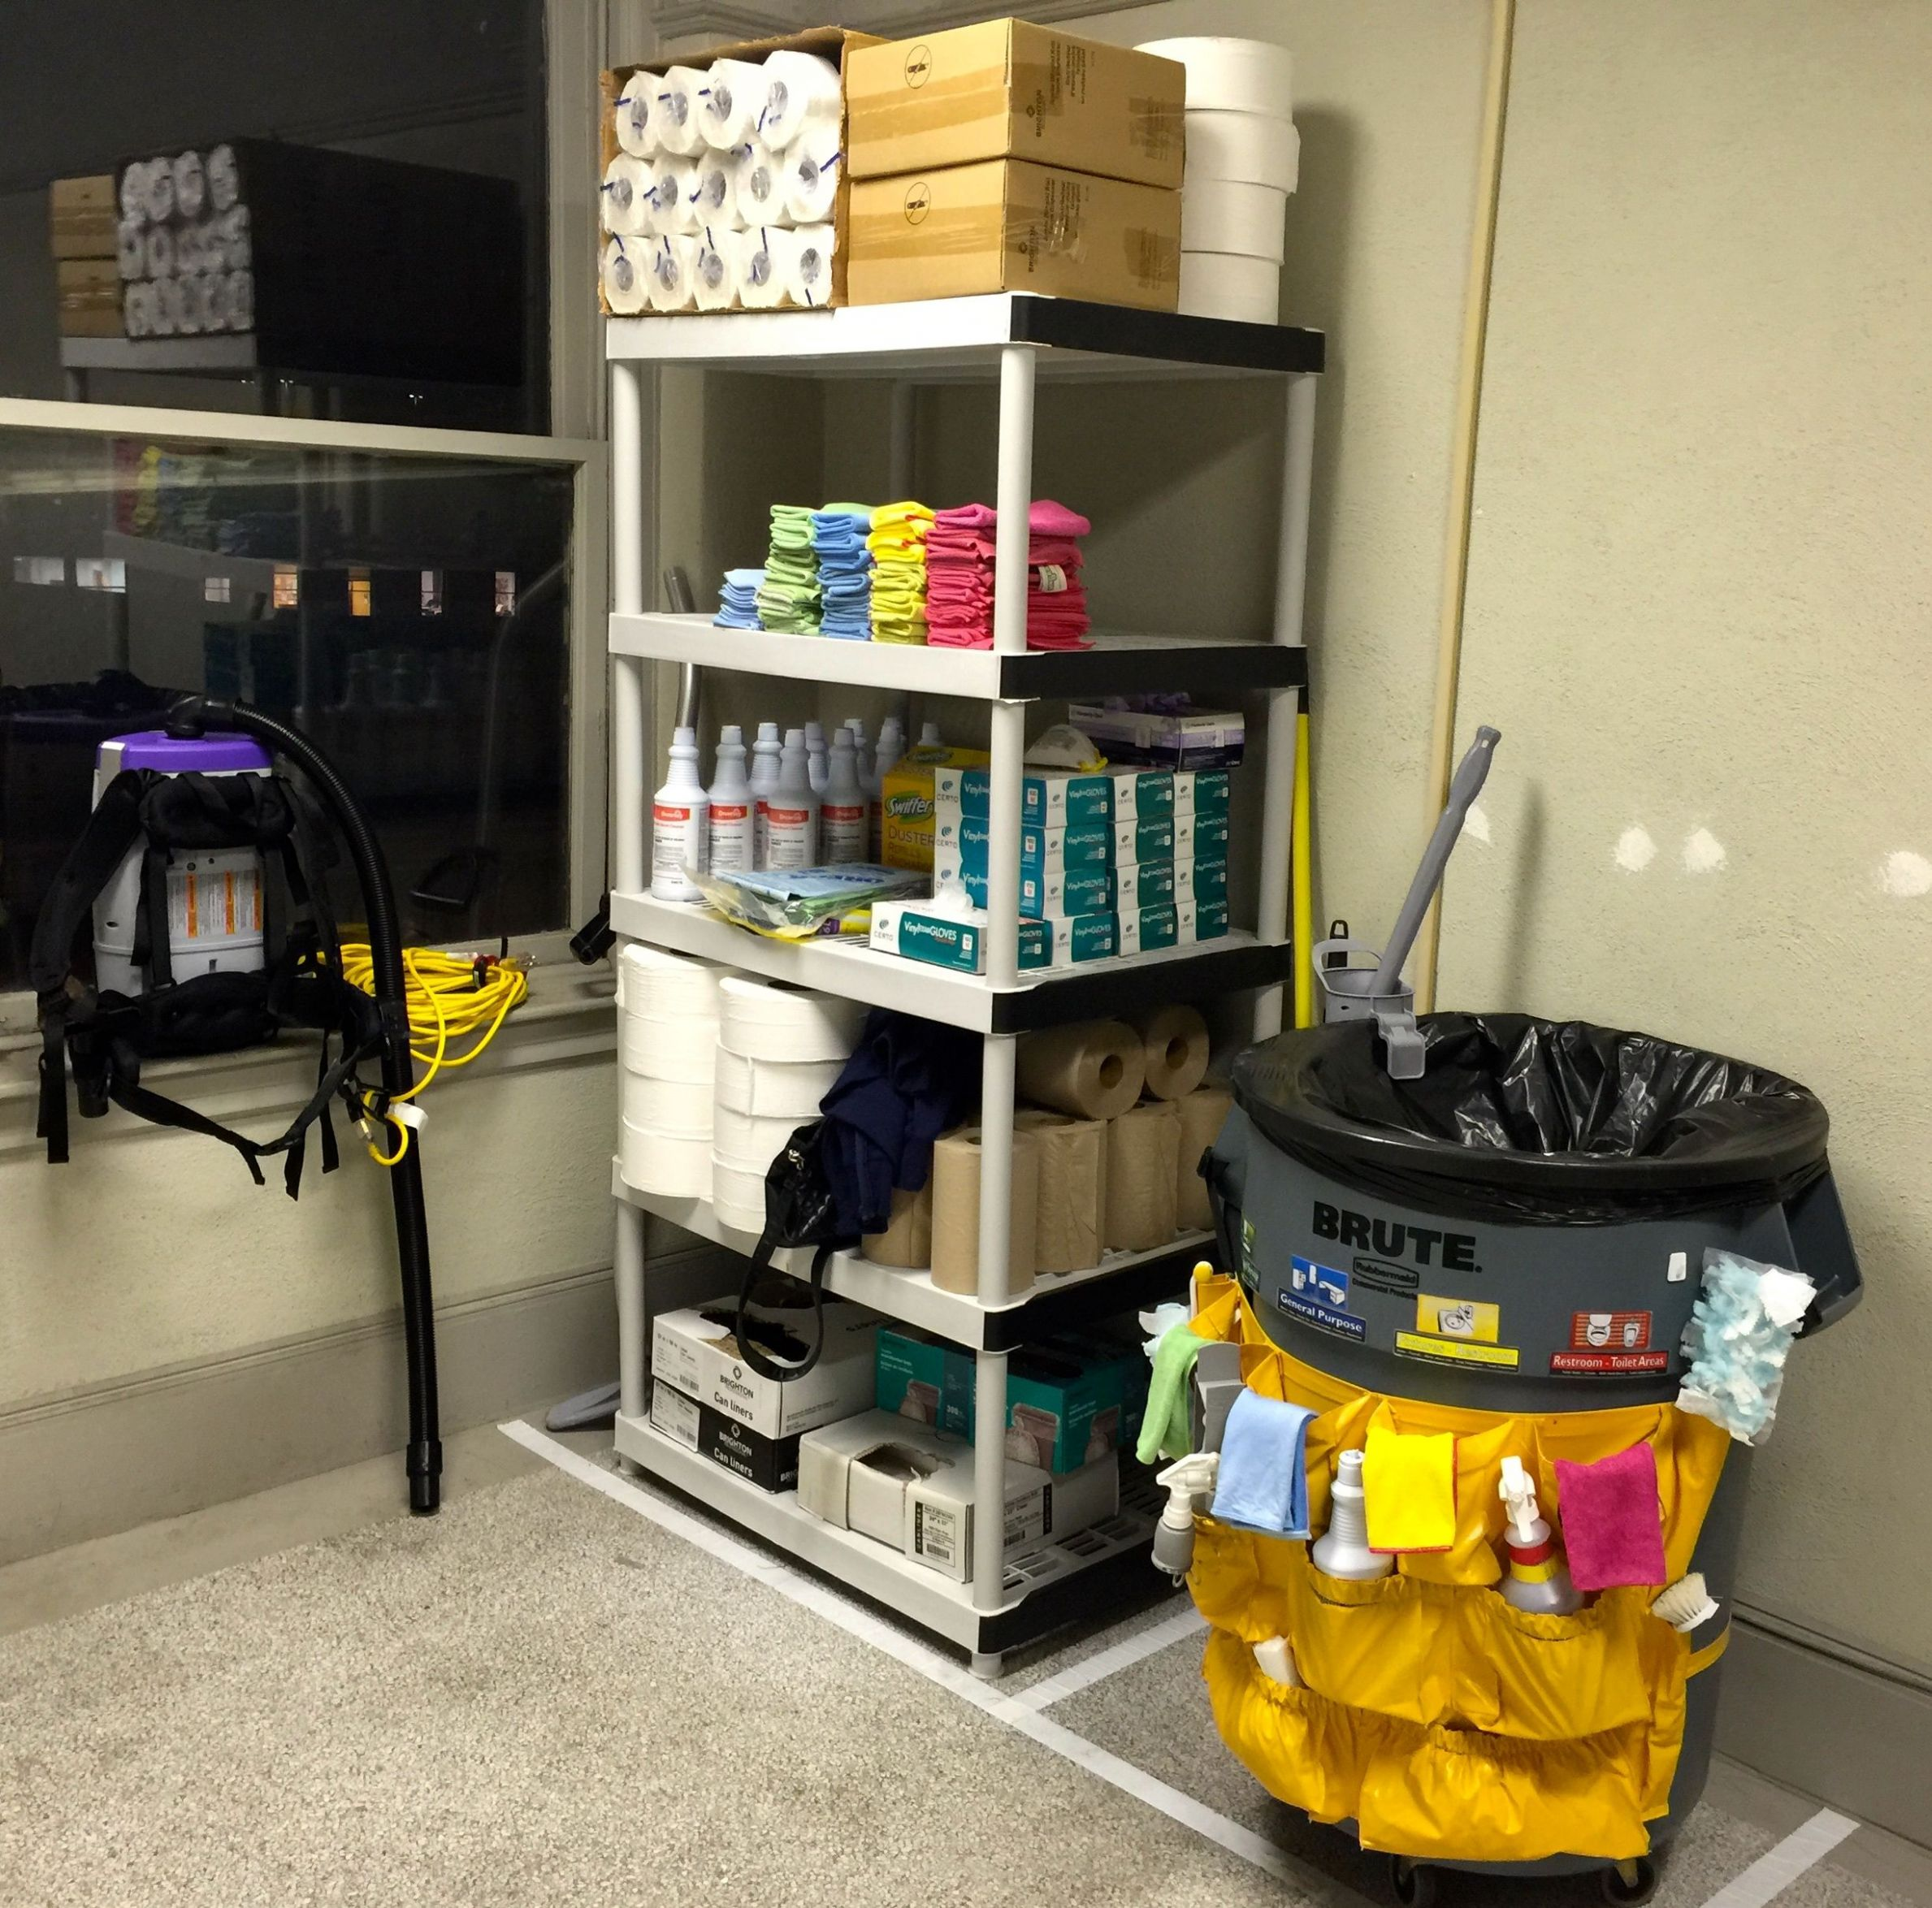 Image result for hotel janitor closet | Hotel kitchen, Commercial ...